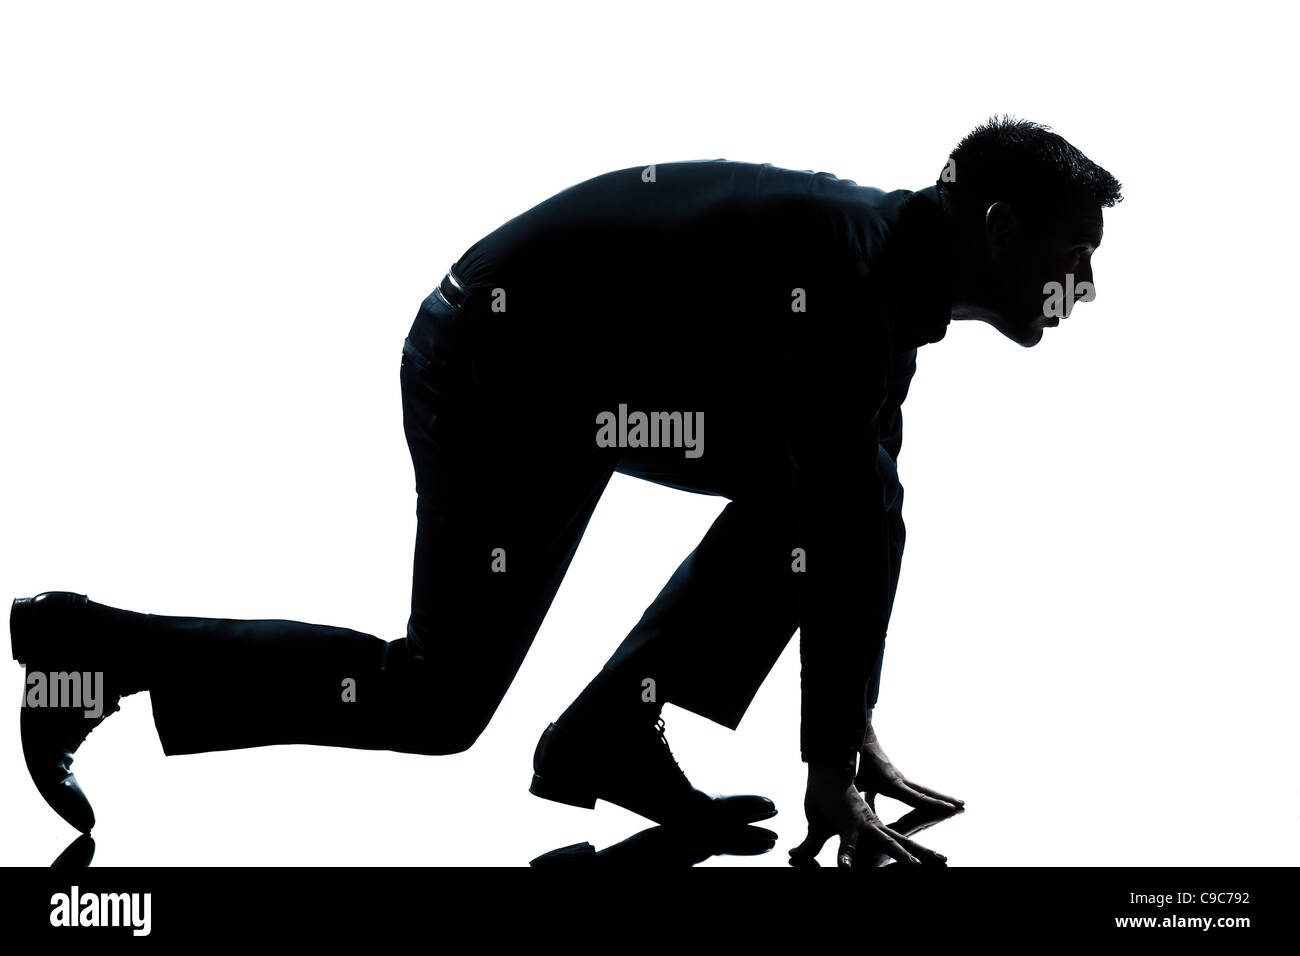 9ab7846dc one caucasian man in starting block posture ready to run full length  silhouette in studio isolated